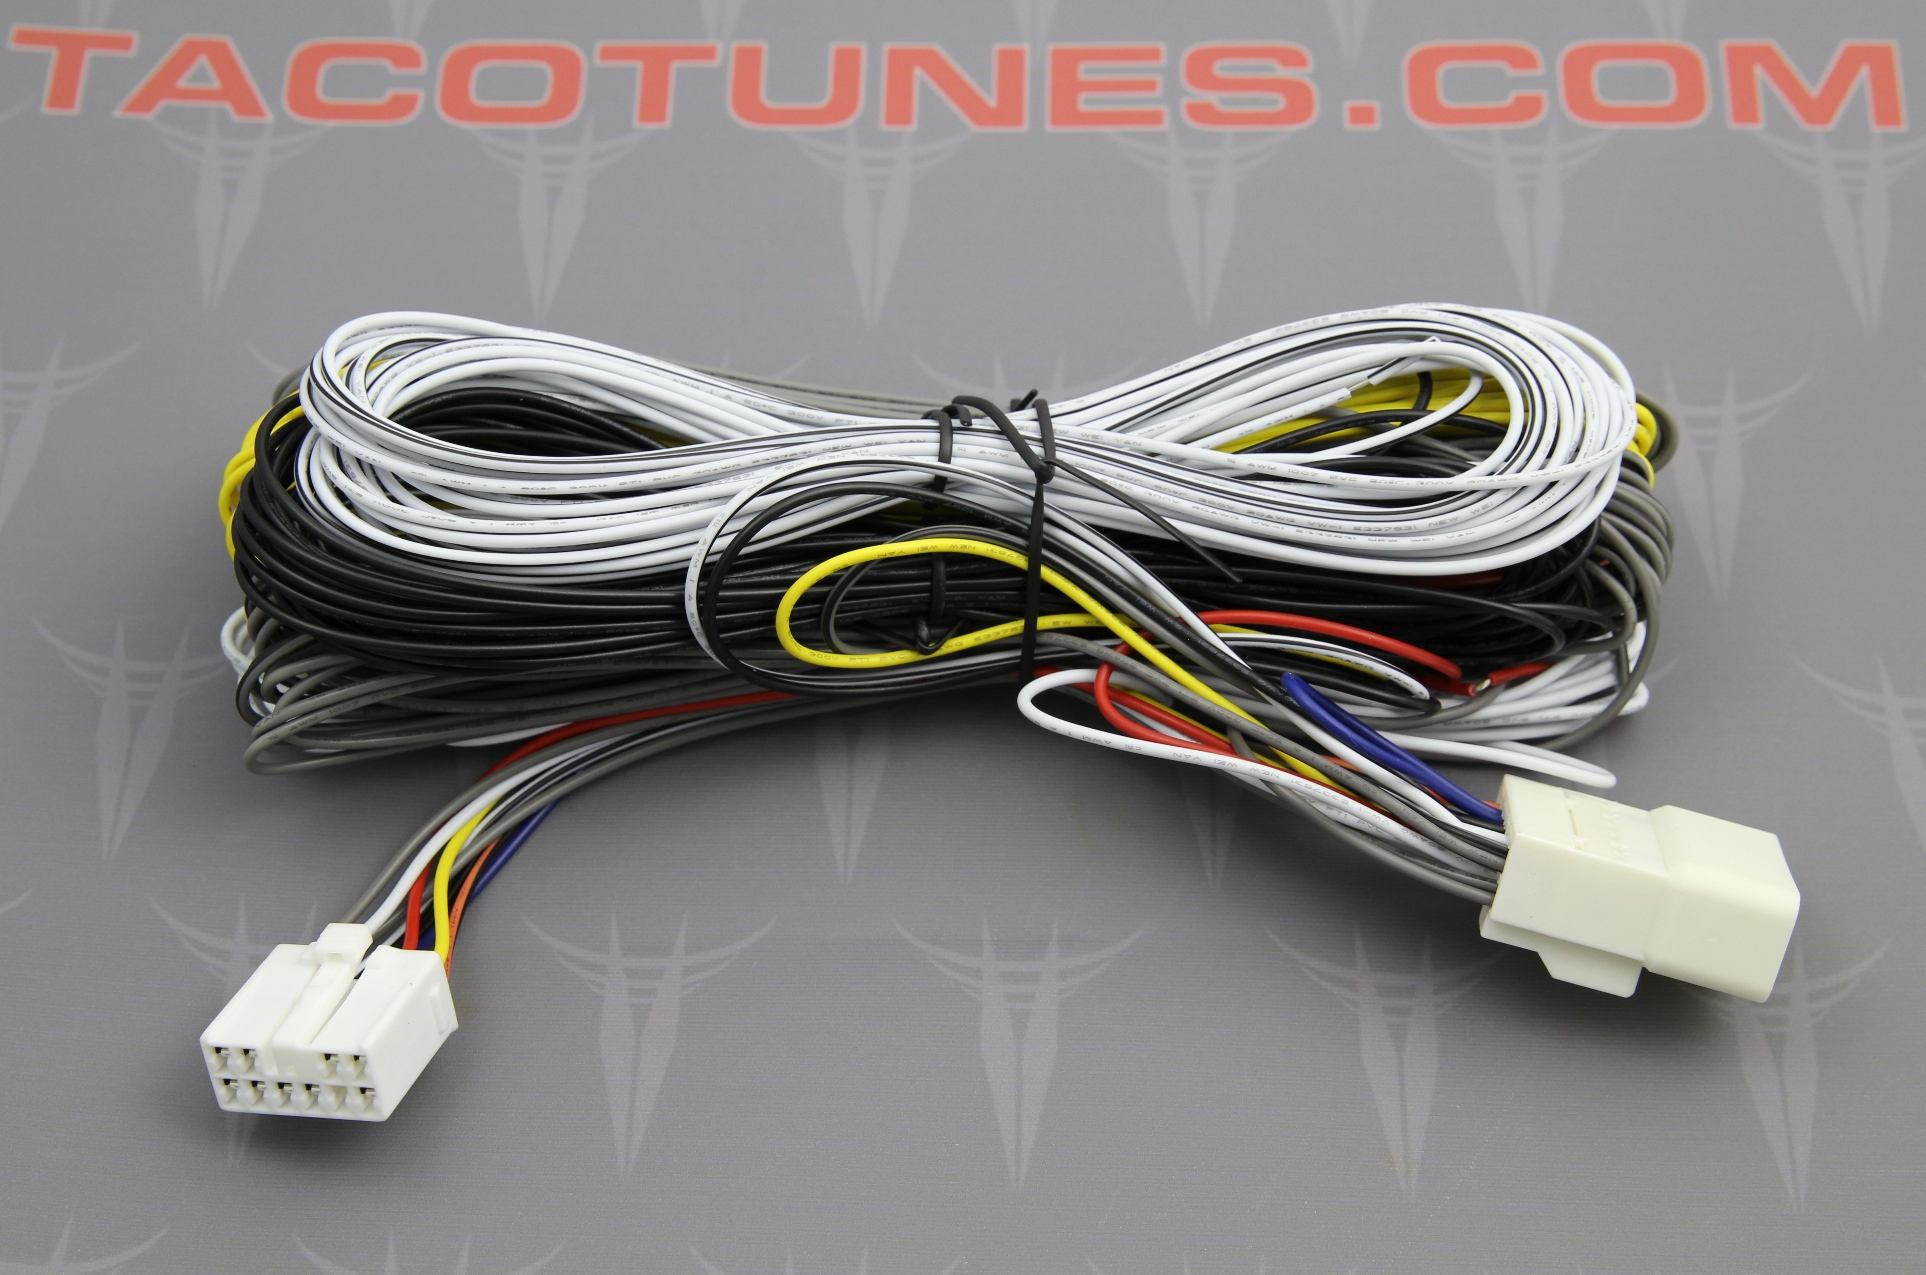 tacoma sound processor wire harness integration system taco tunes rh tacotunes com tacoma trailer wiring harness tacoma wiring harness diagram reverse light